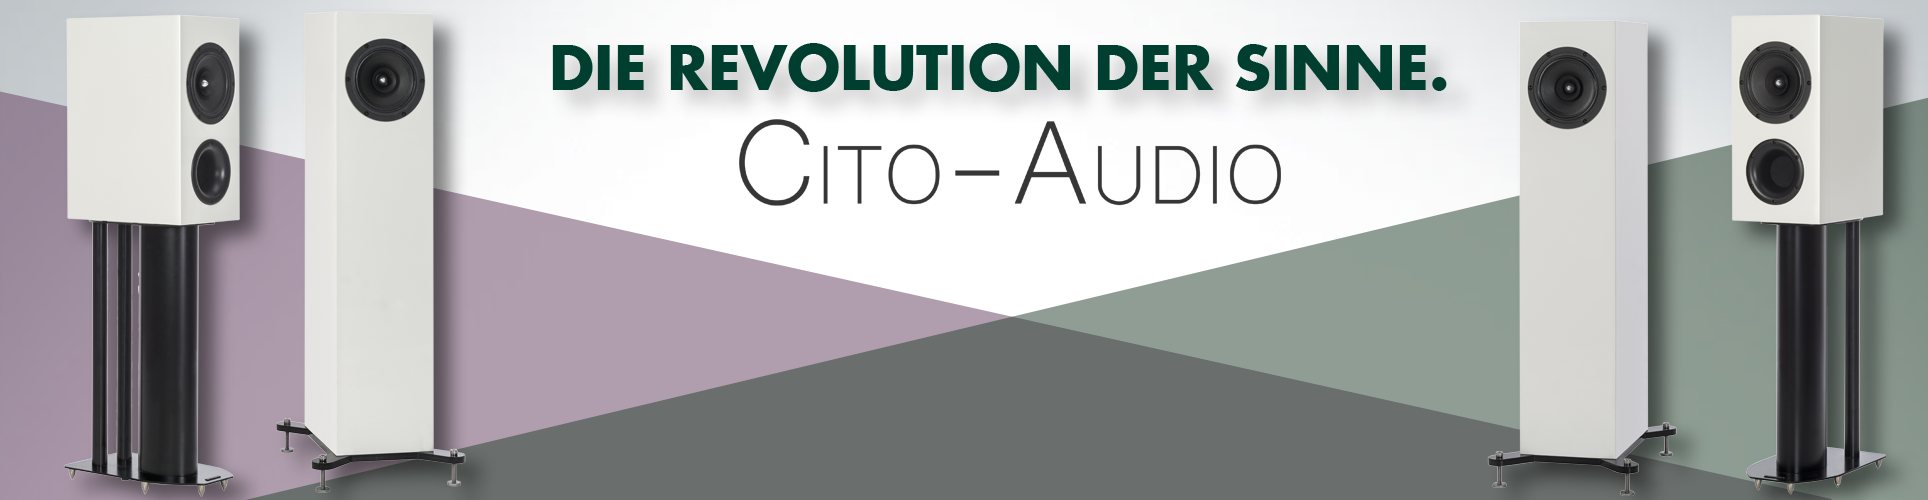 Neu bei Bosse Technik & Design: CITO-Audio.